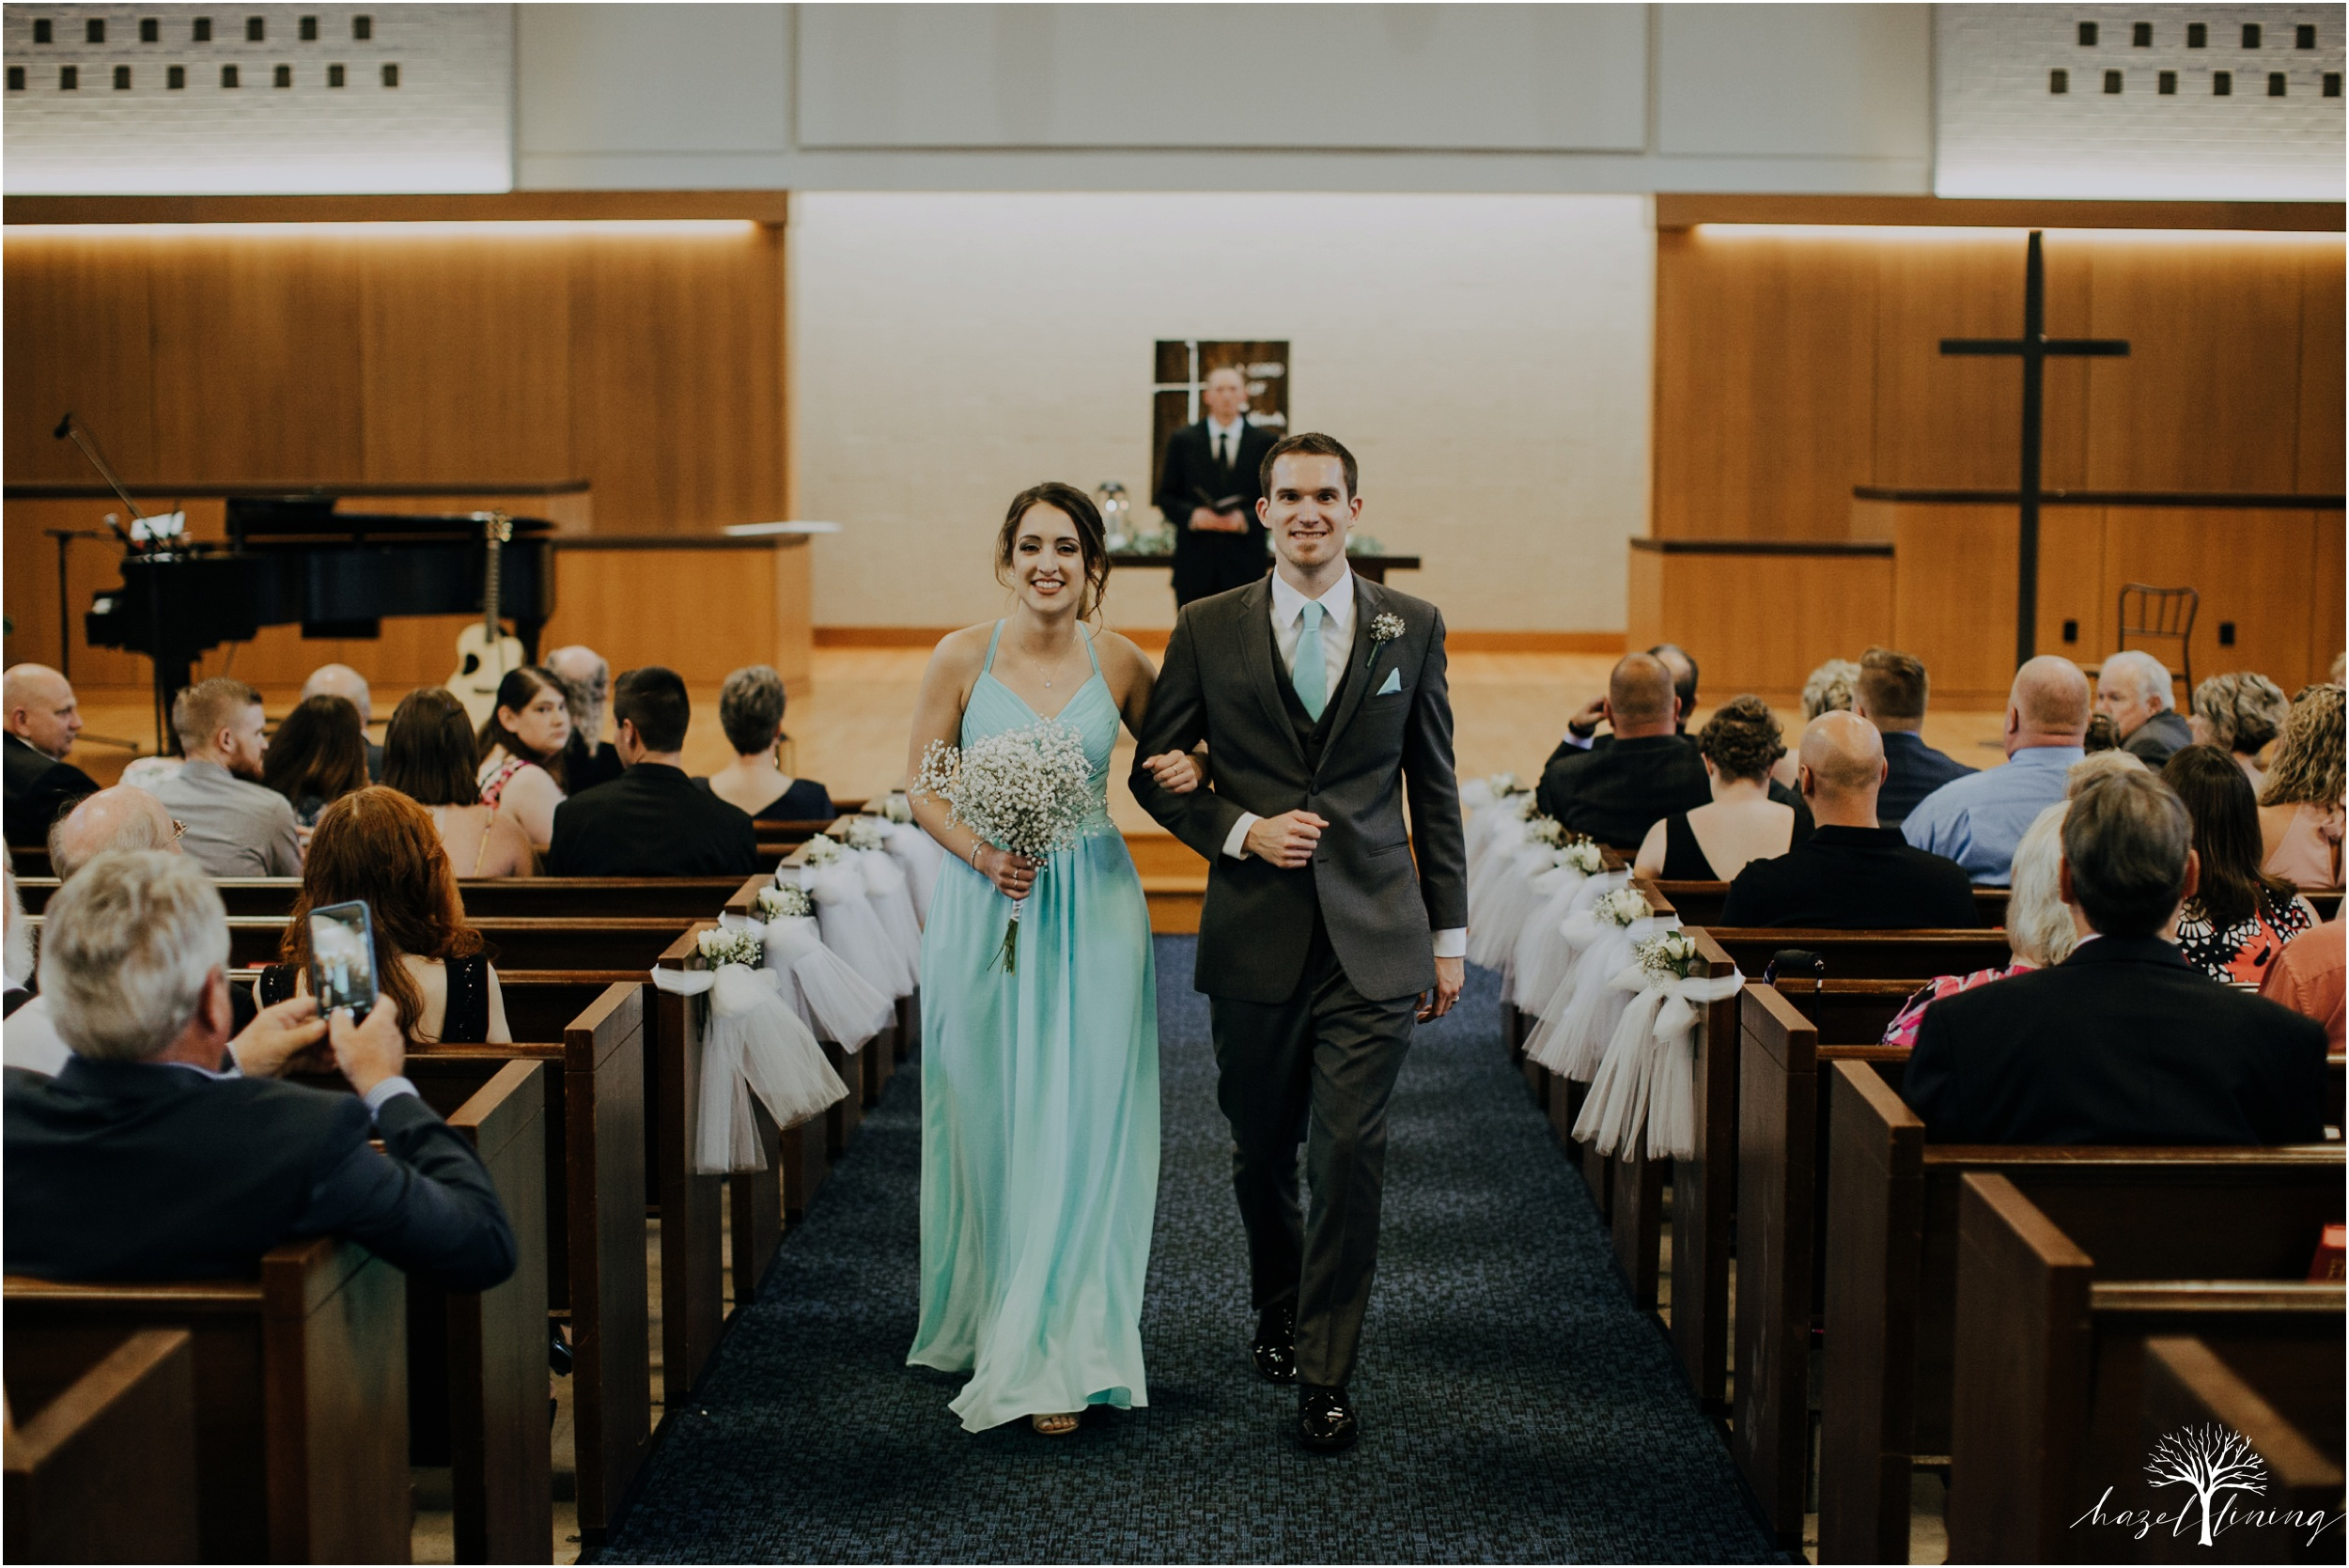 laura-zach-mccaskill-harmony-hall-lebanon-valley-college-summer-wedding-hazel-lining-photography-destination-elopement-wedding-engagement-photography_0076.jpg